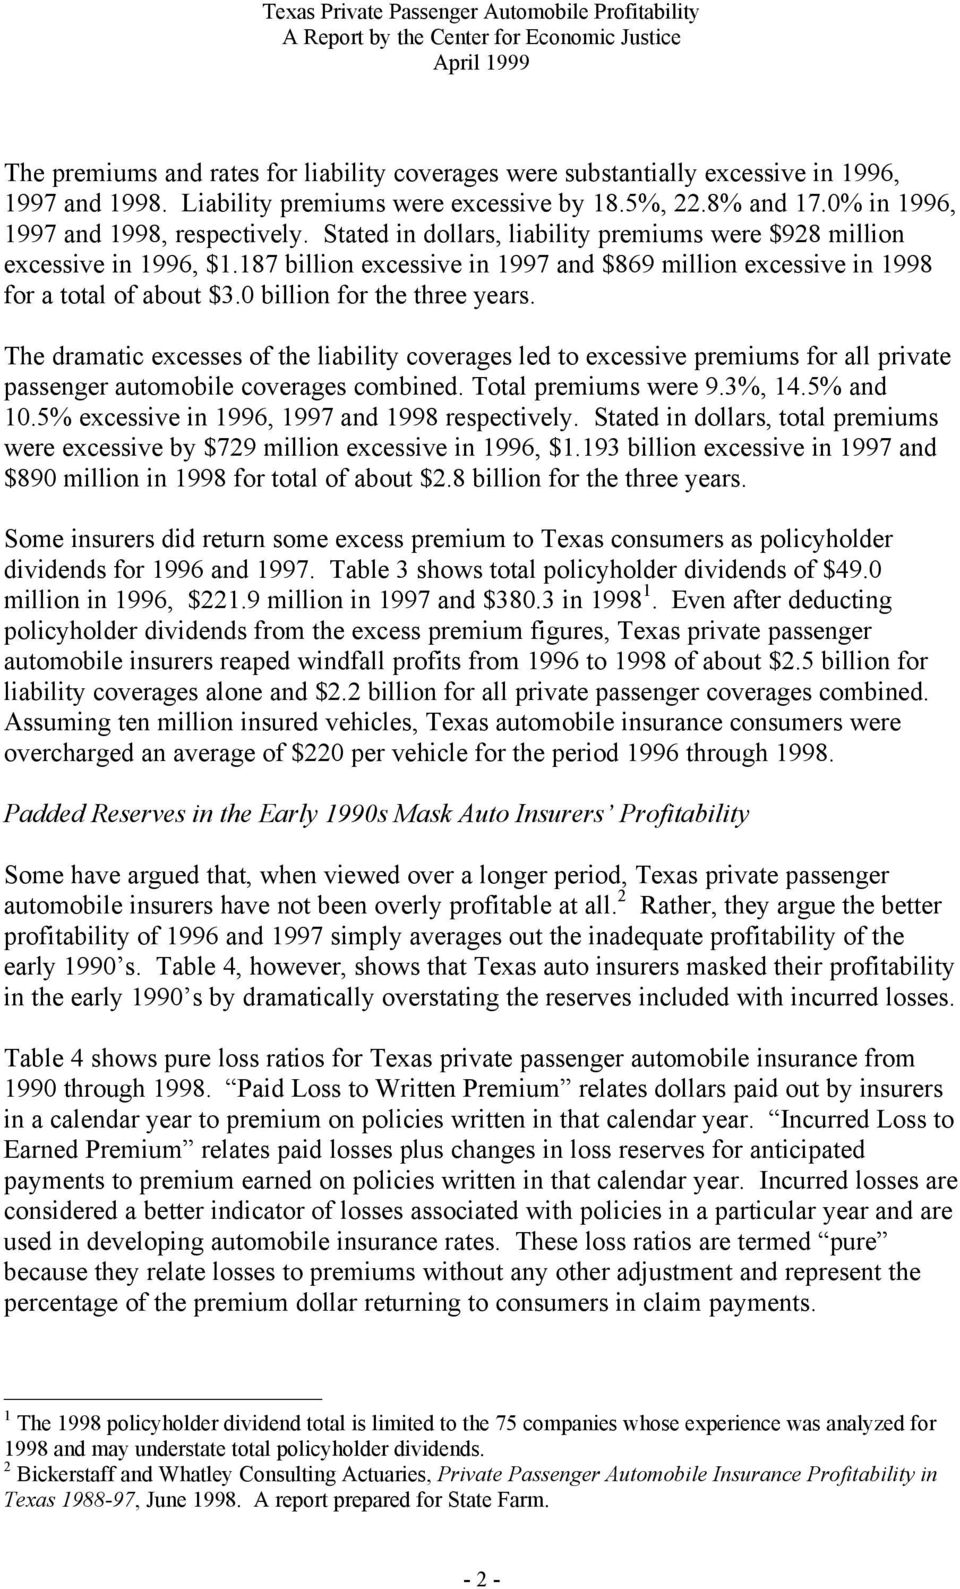 The dramatic excesses of the liability coverages led to excessive premiums for all private passenger automobile coverages combined. Total premiums were 9.3%, 14.5% and 10.